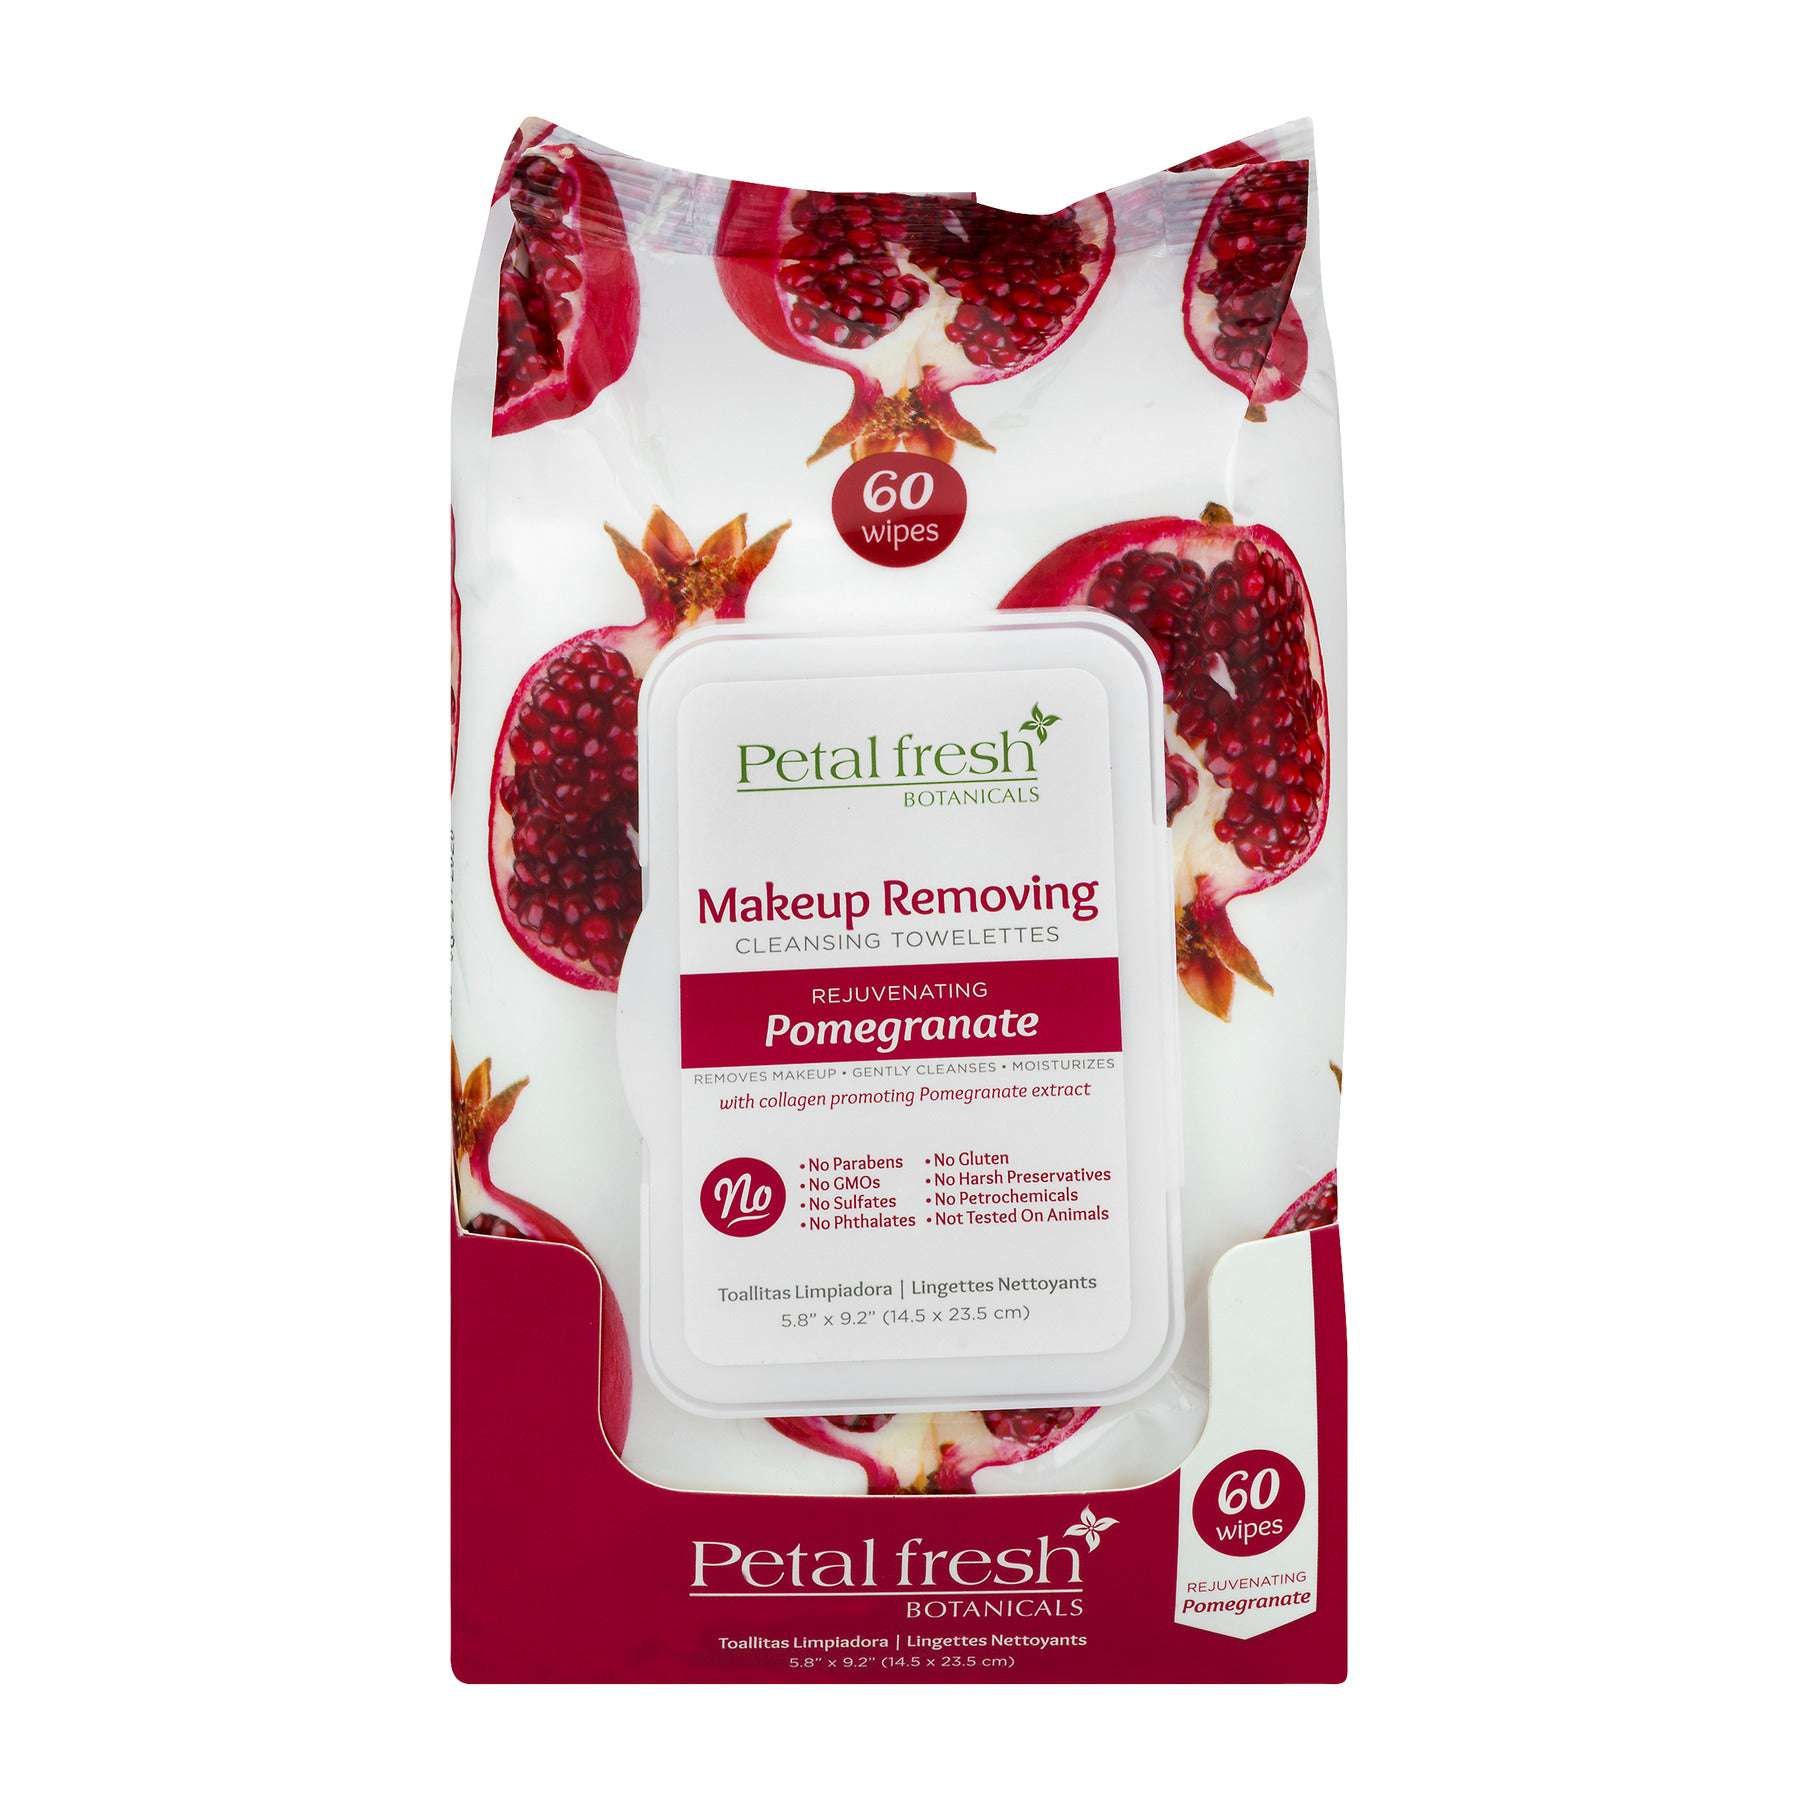 Make-Up Removing Cleansing Towelettes Pomegranate (60 Count)